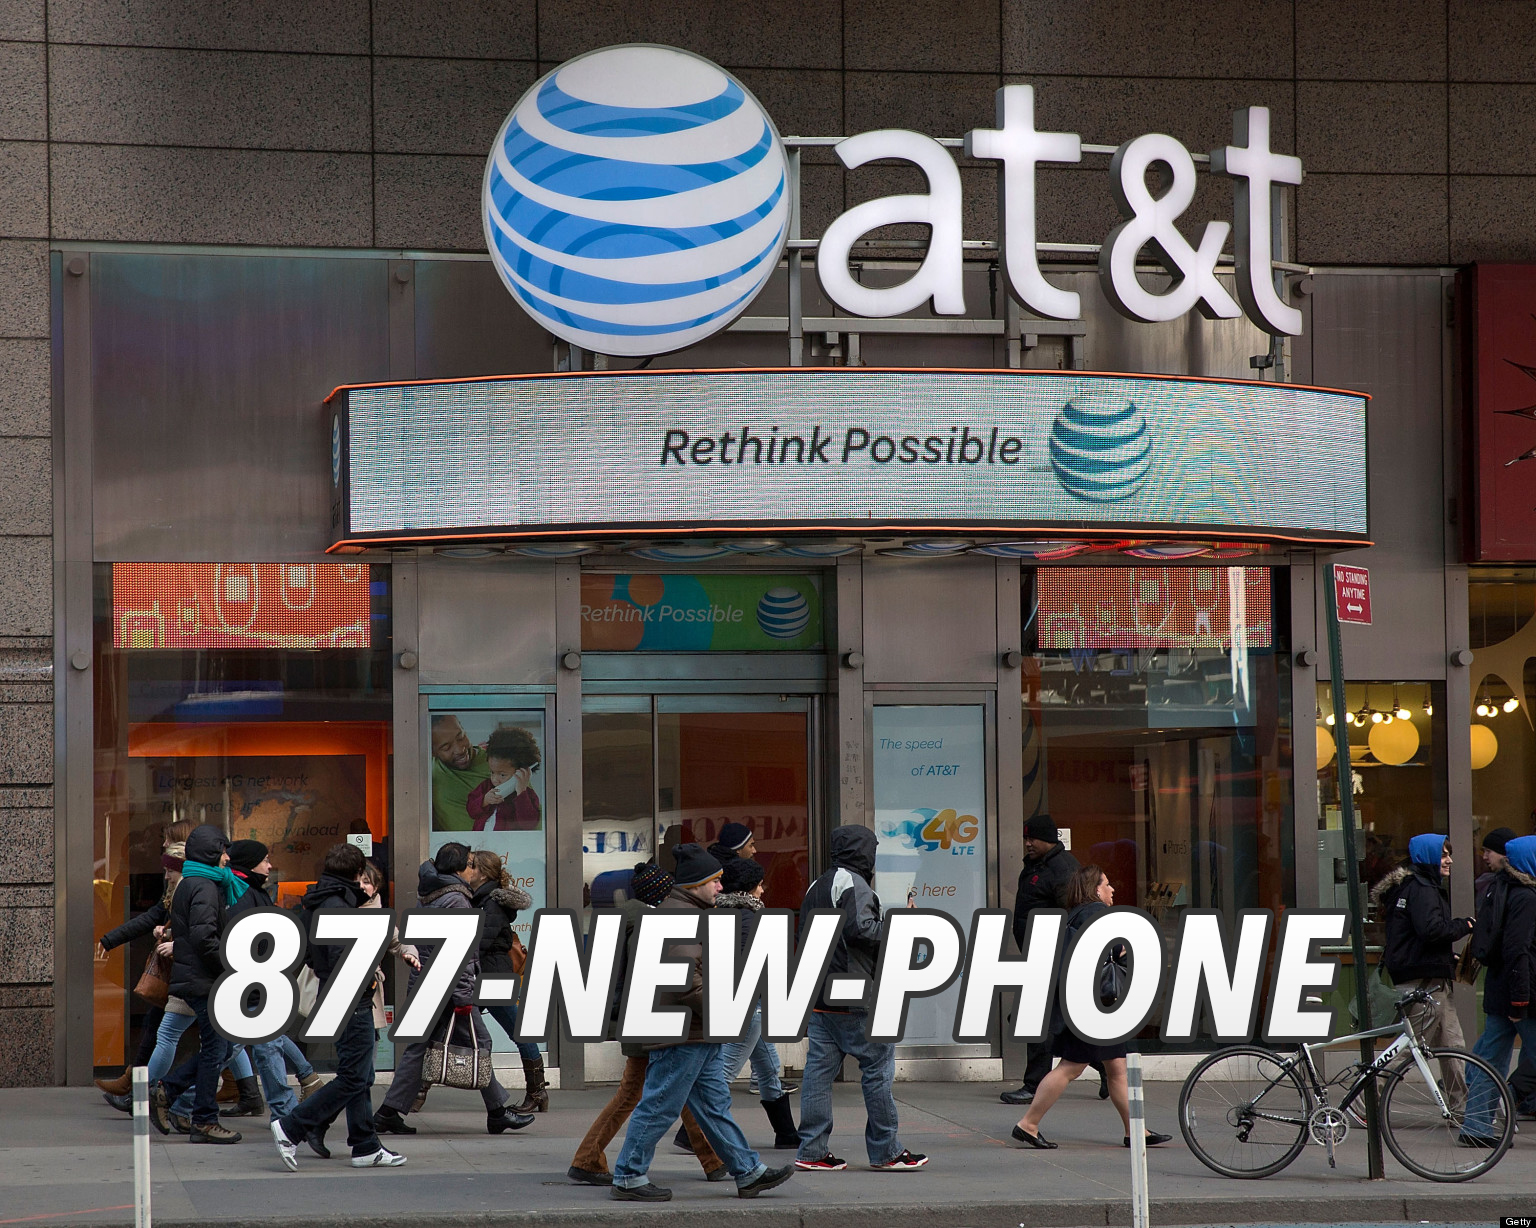 AT&T Building front using 1-877-NEW-PHONE